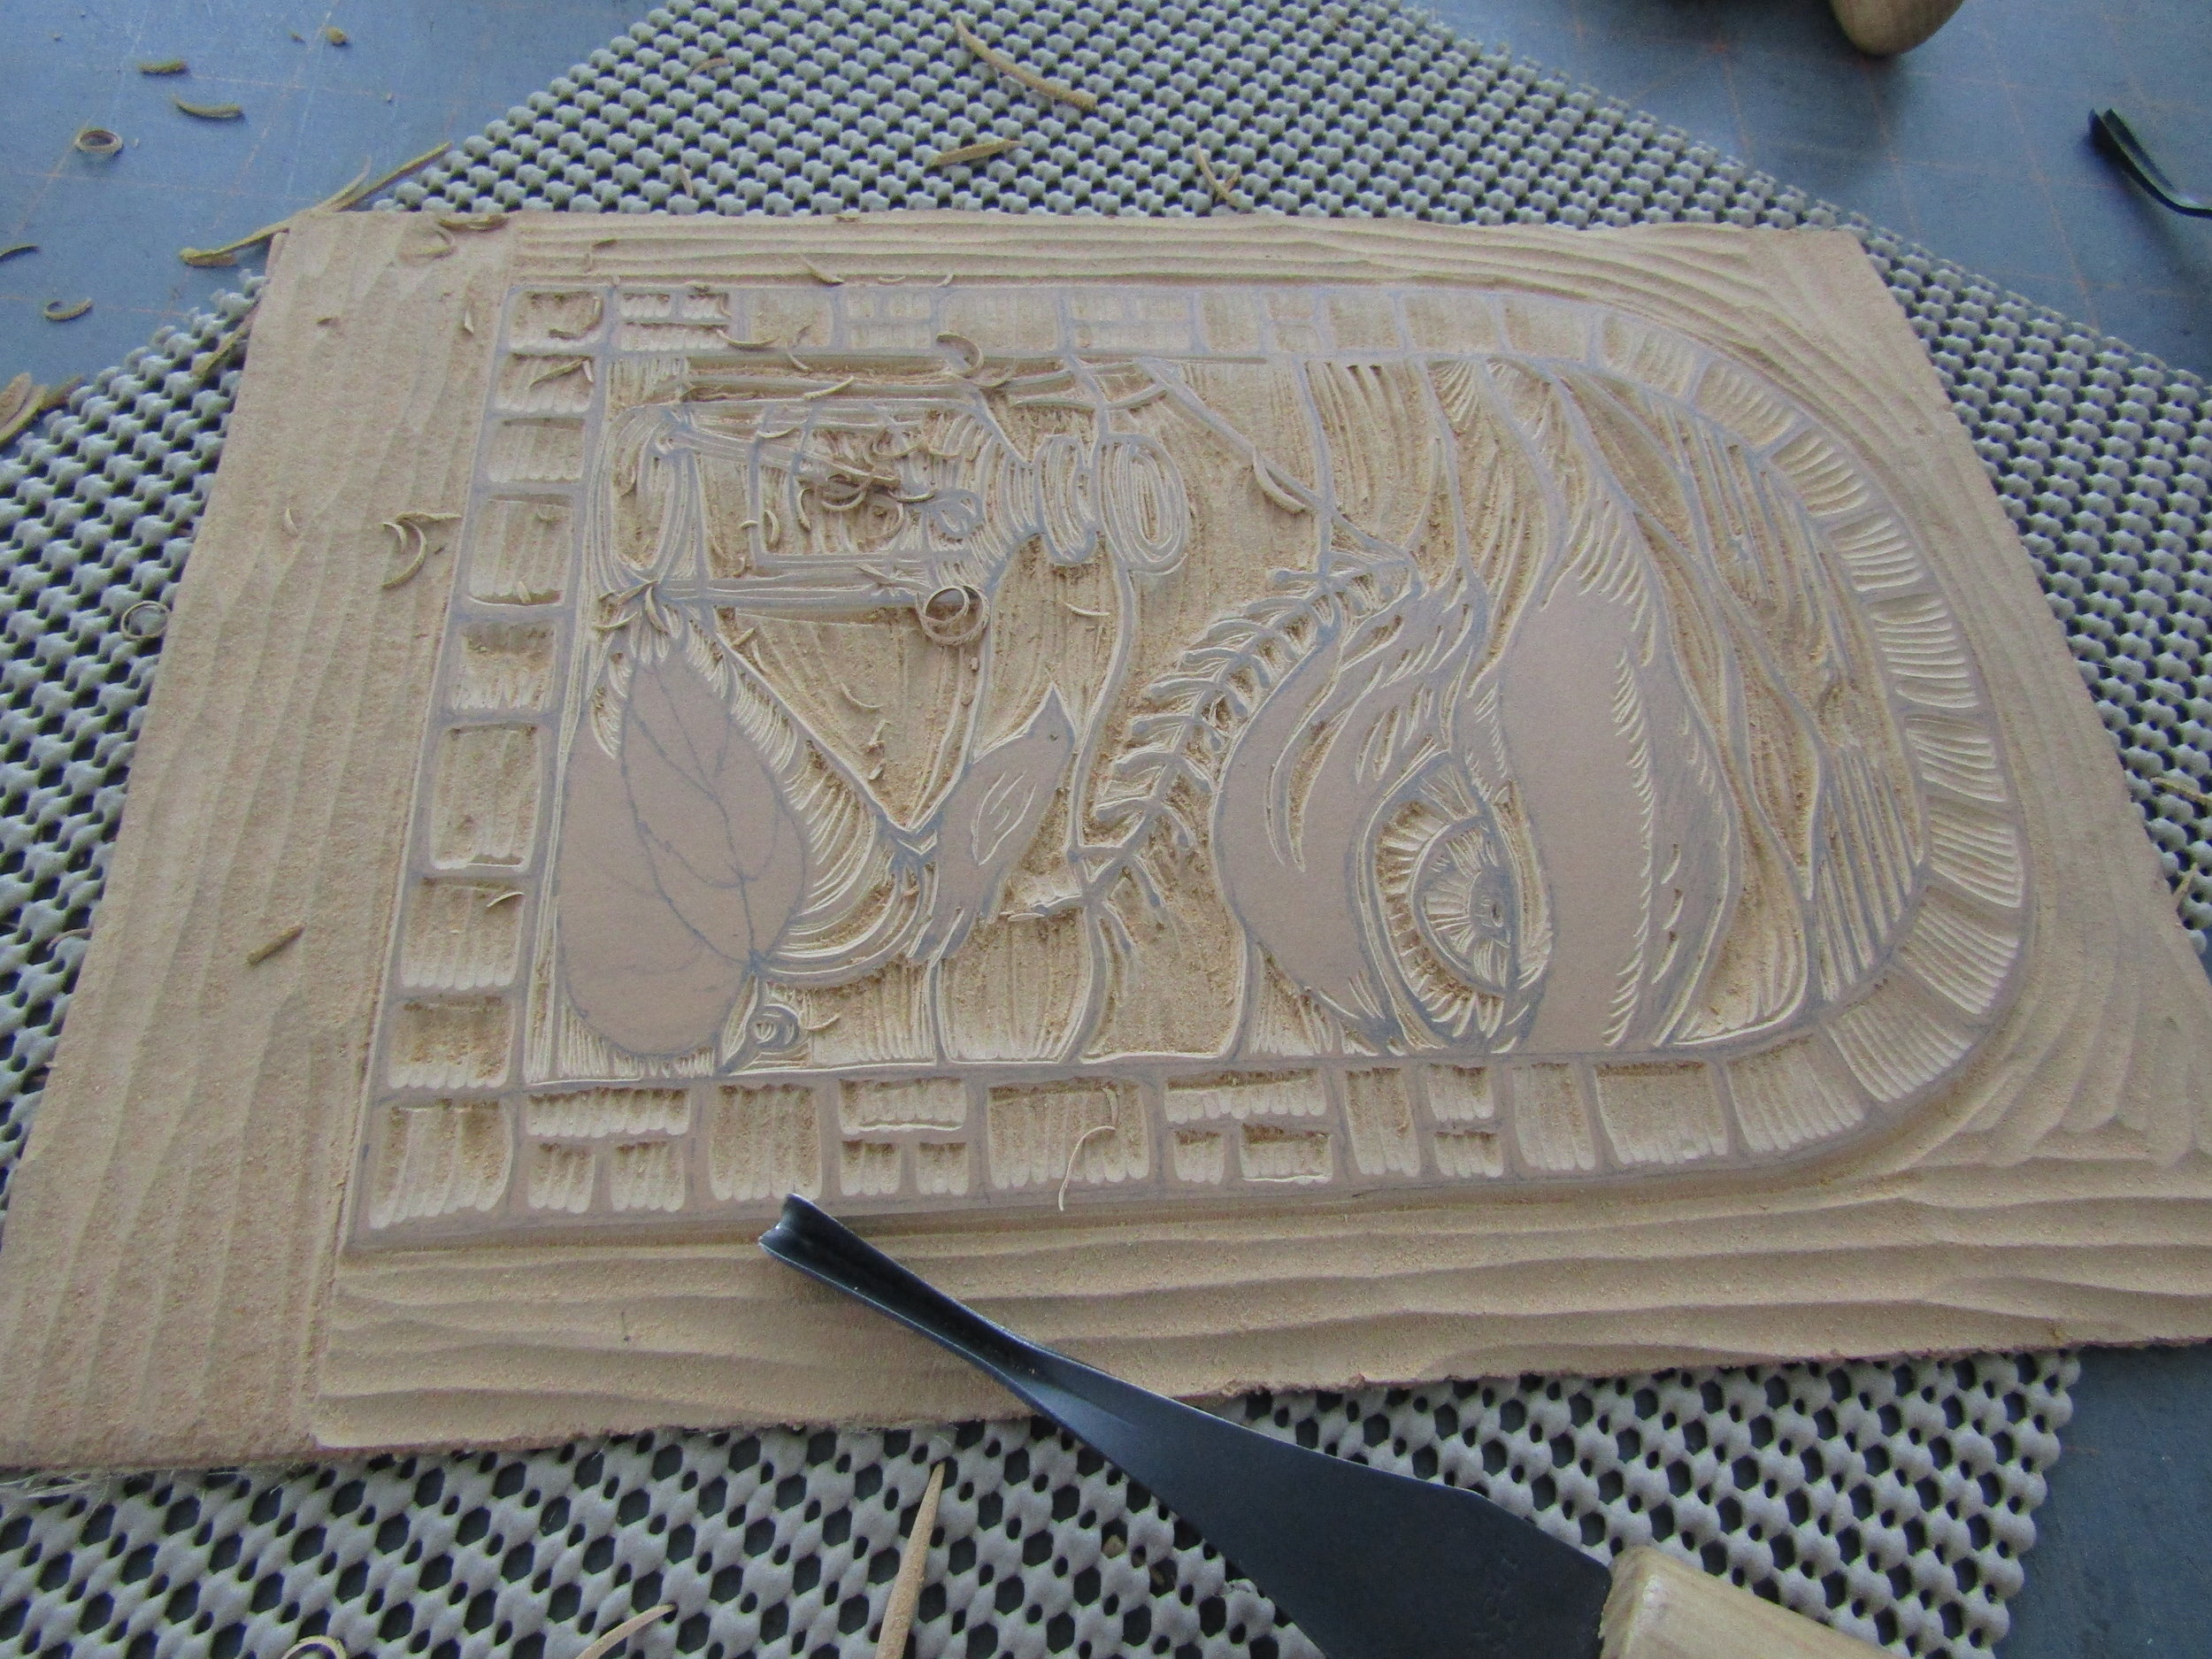 I then carved this plate based on the pencil drawing. This provided the image which was printed on the colored sections.